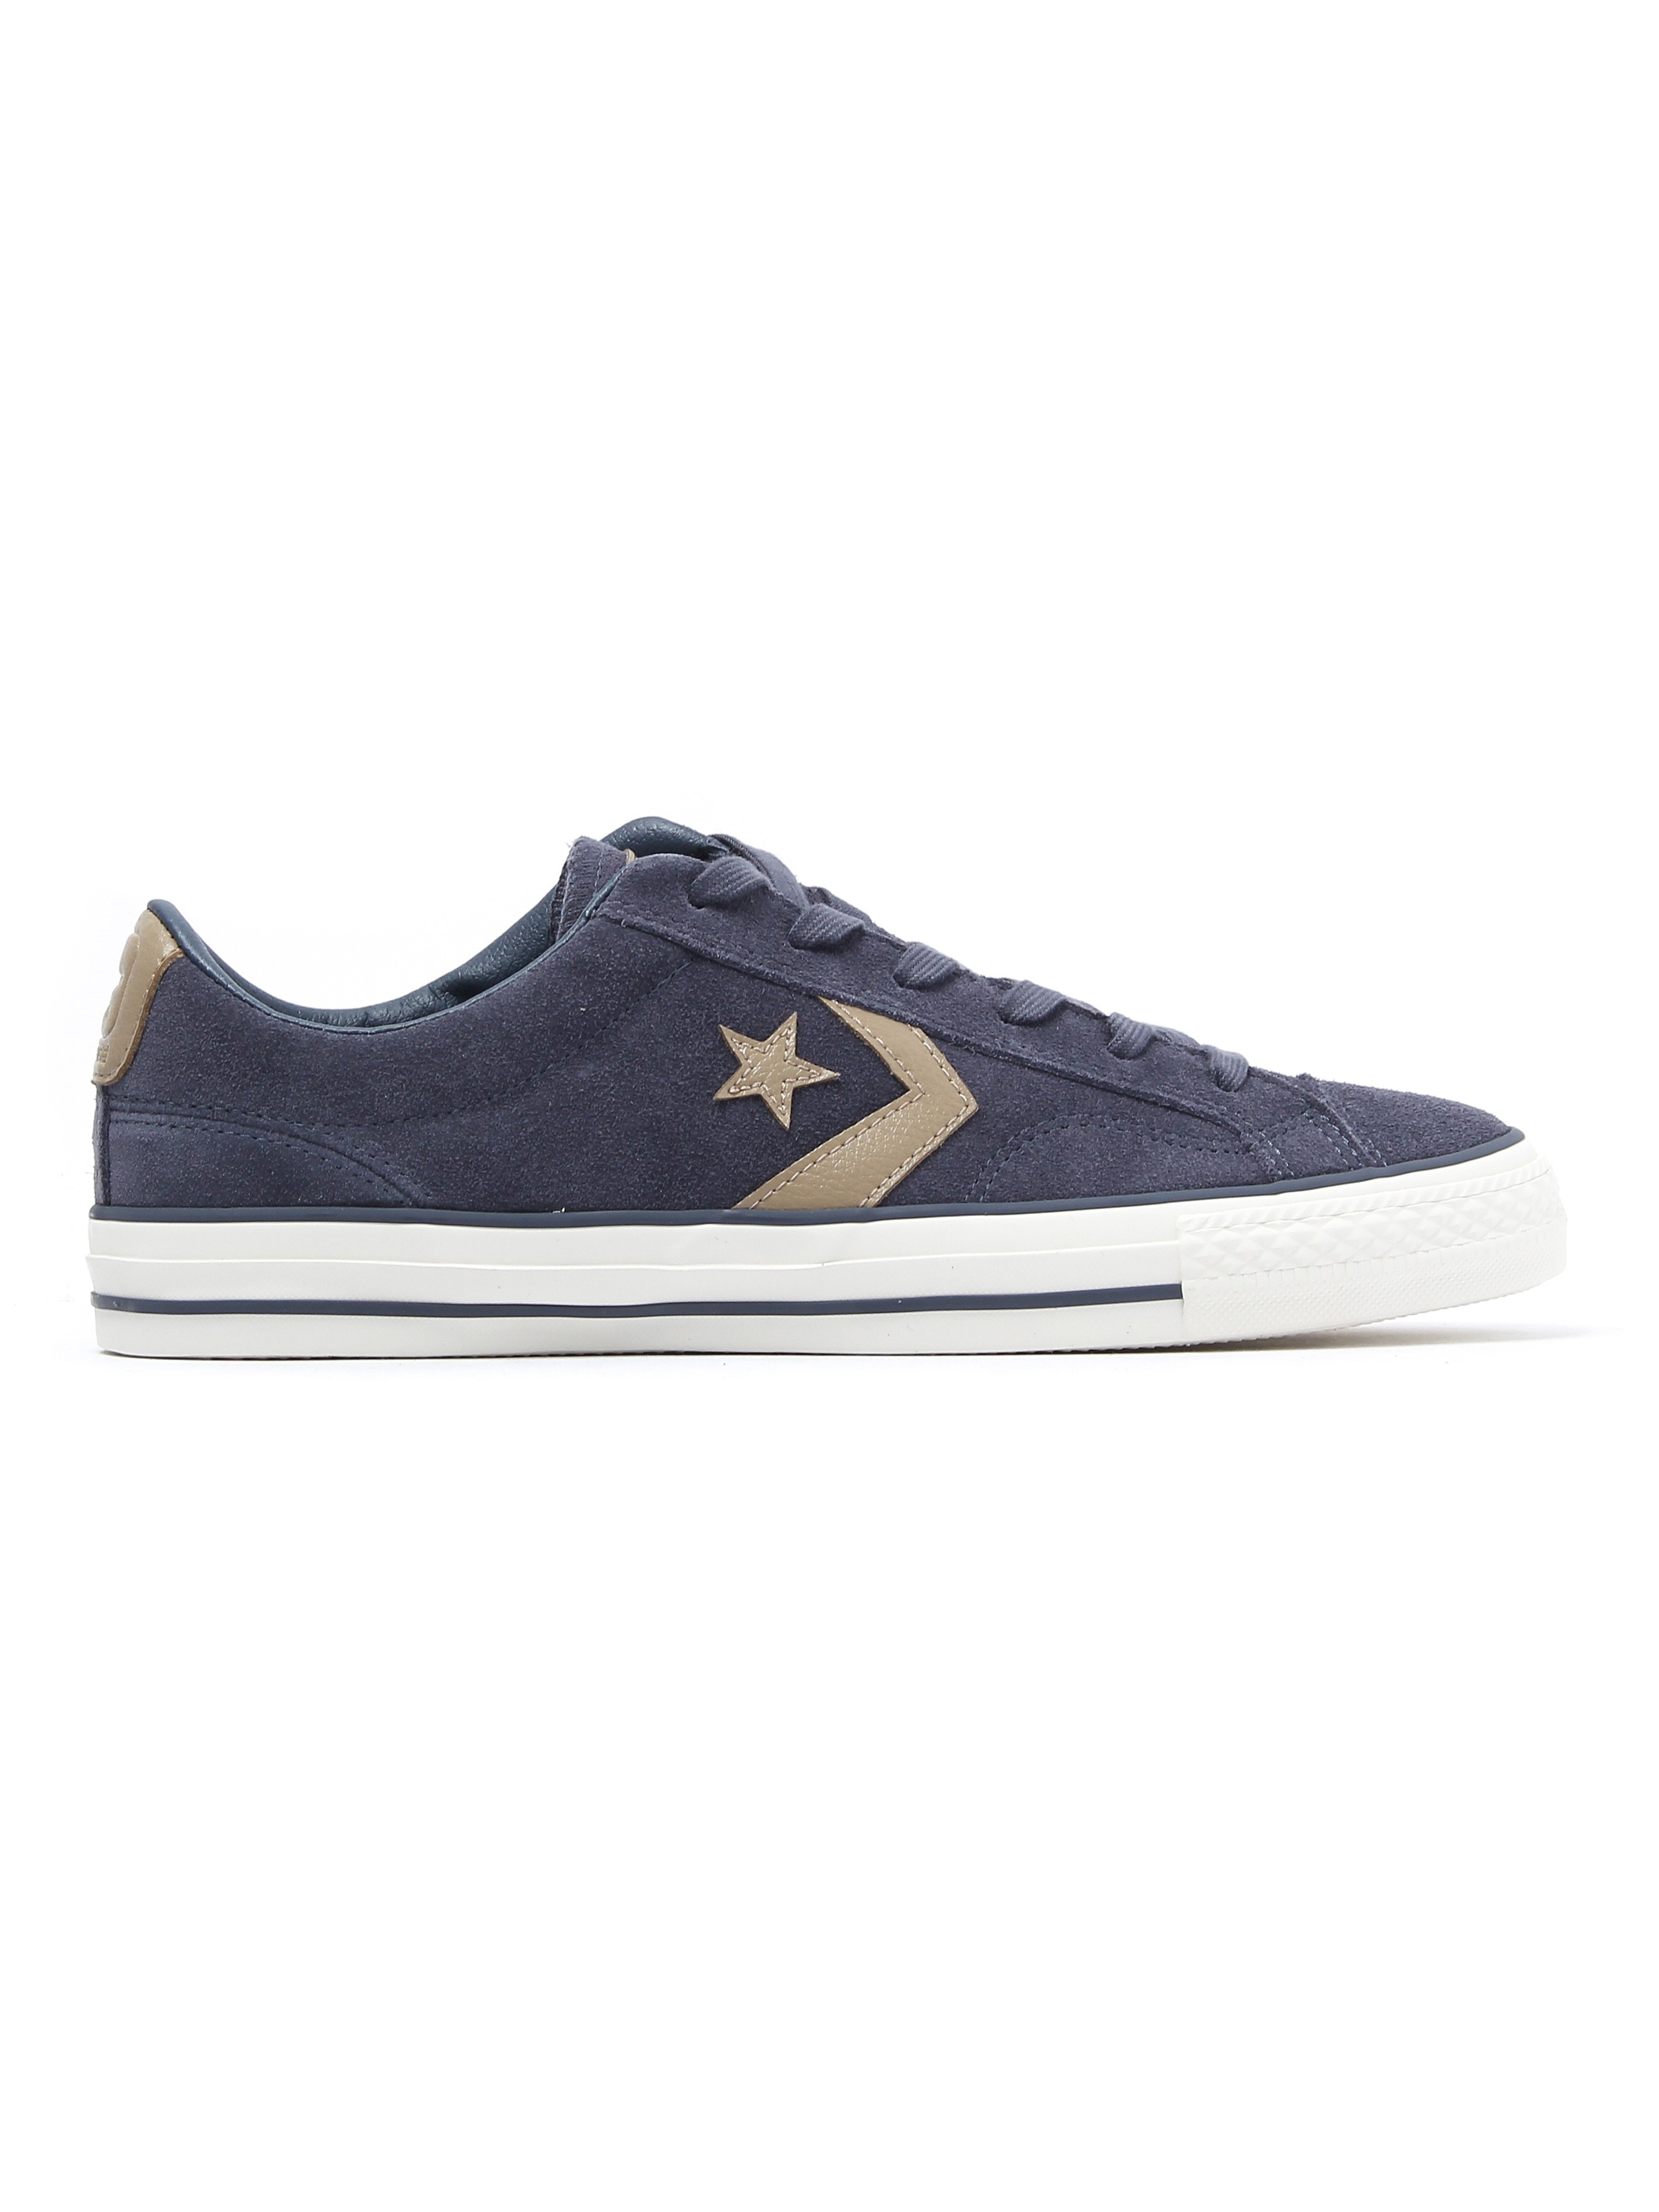 Converse Men's Star Player OX Trainers - Shark Skin Suede